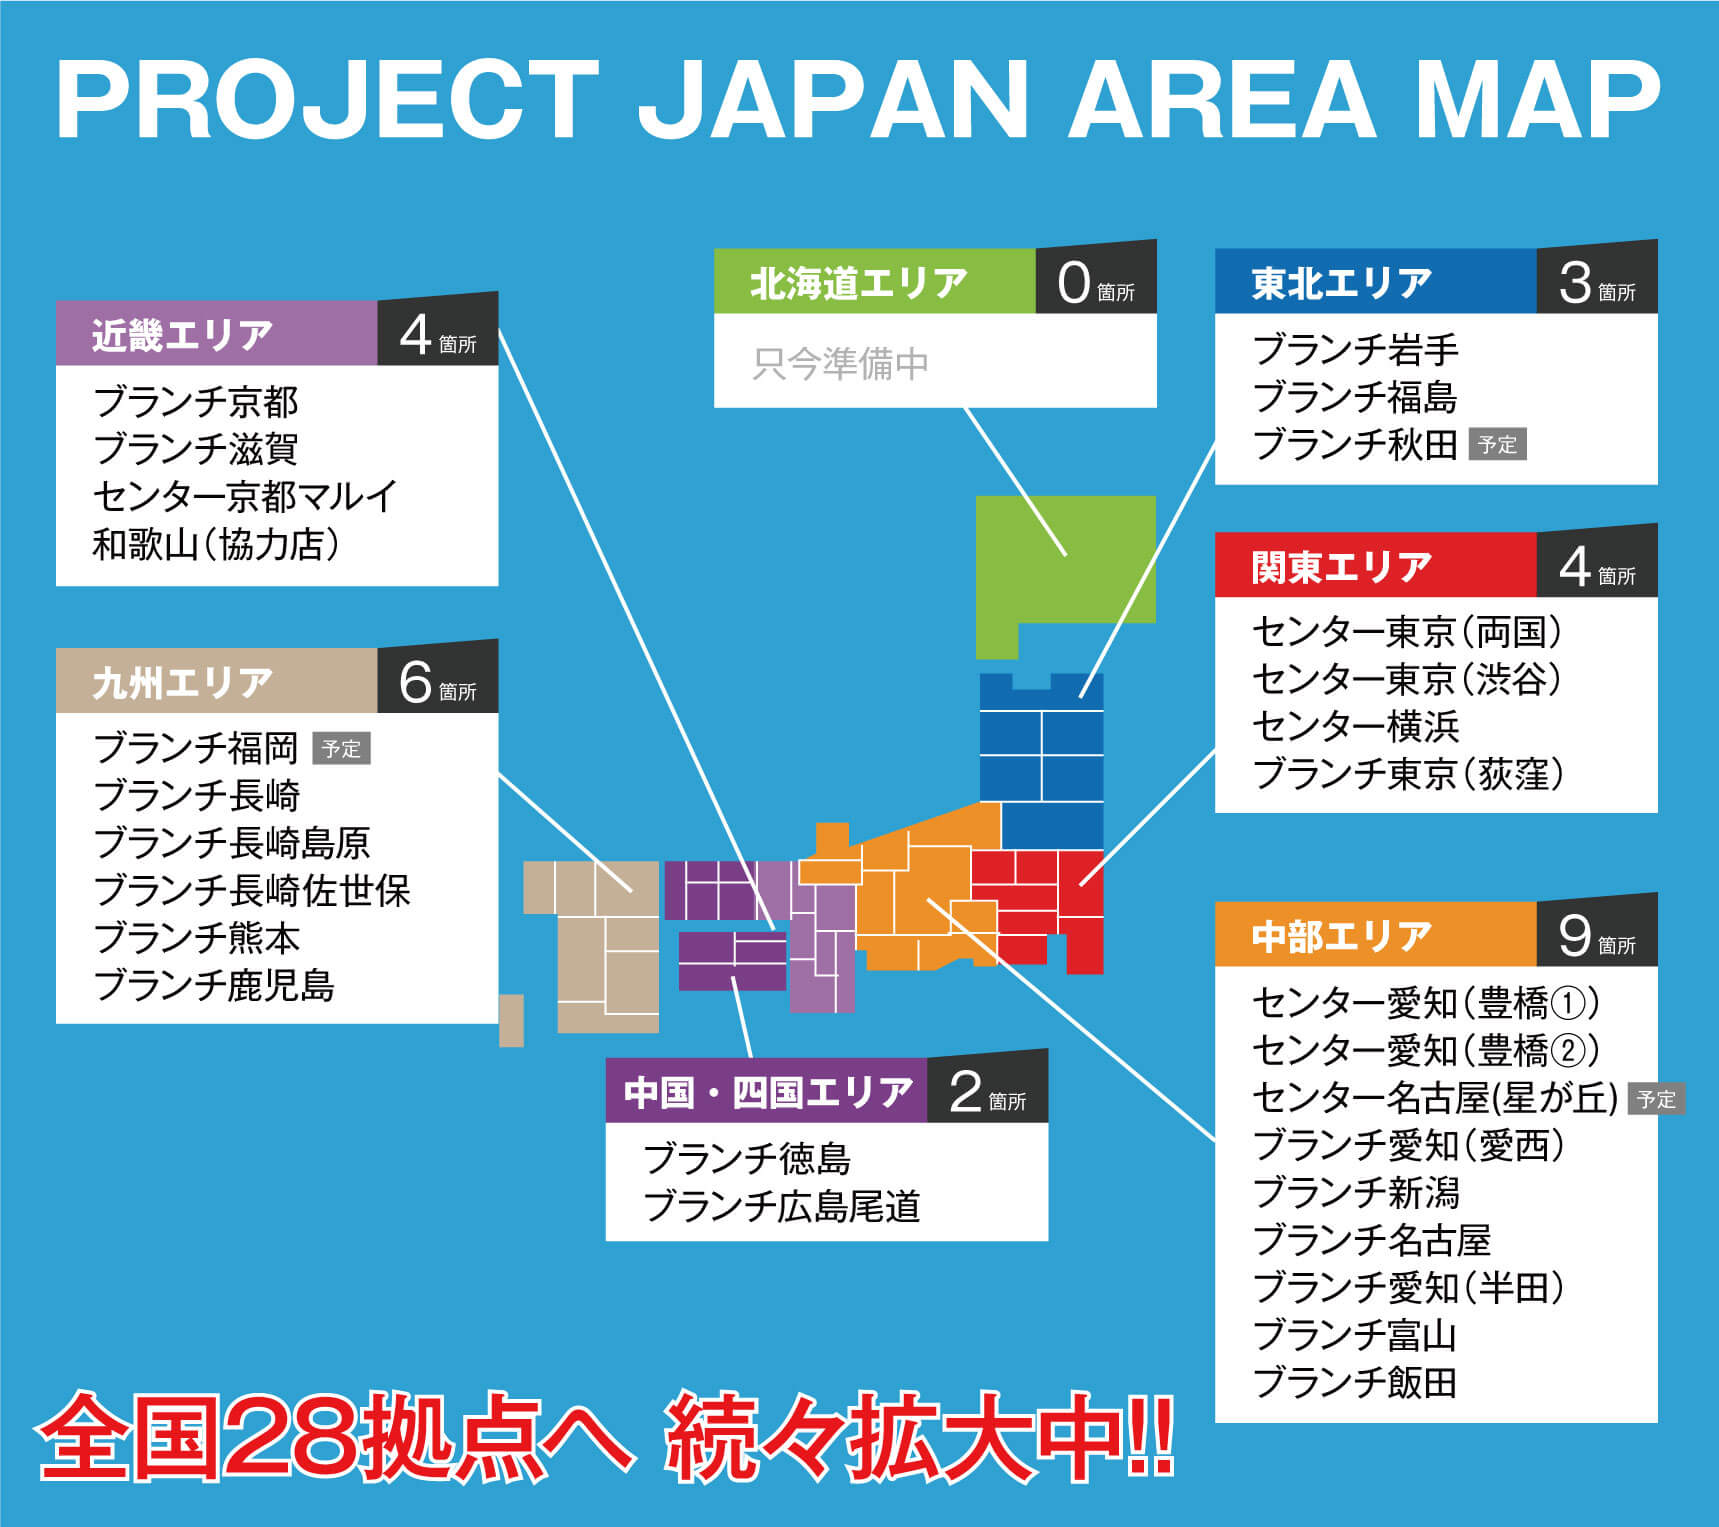 PROJECT JAPAN AREA MAP